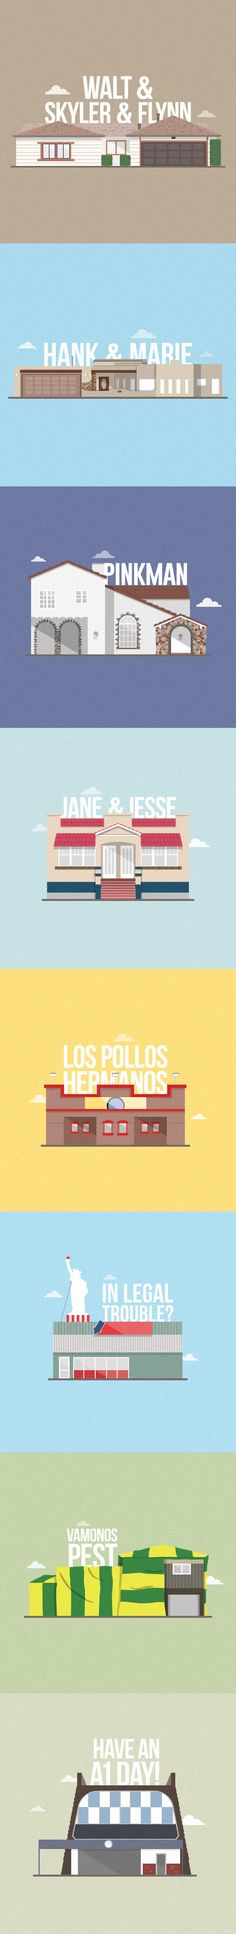 Breaking Bad Houses on Behance